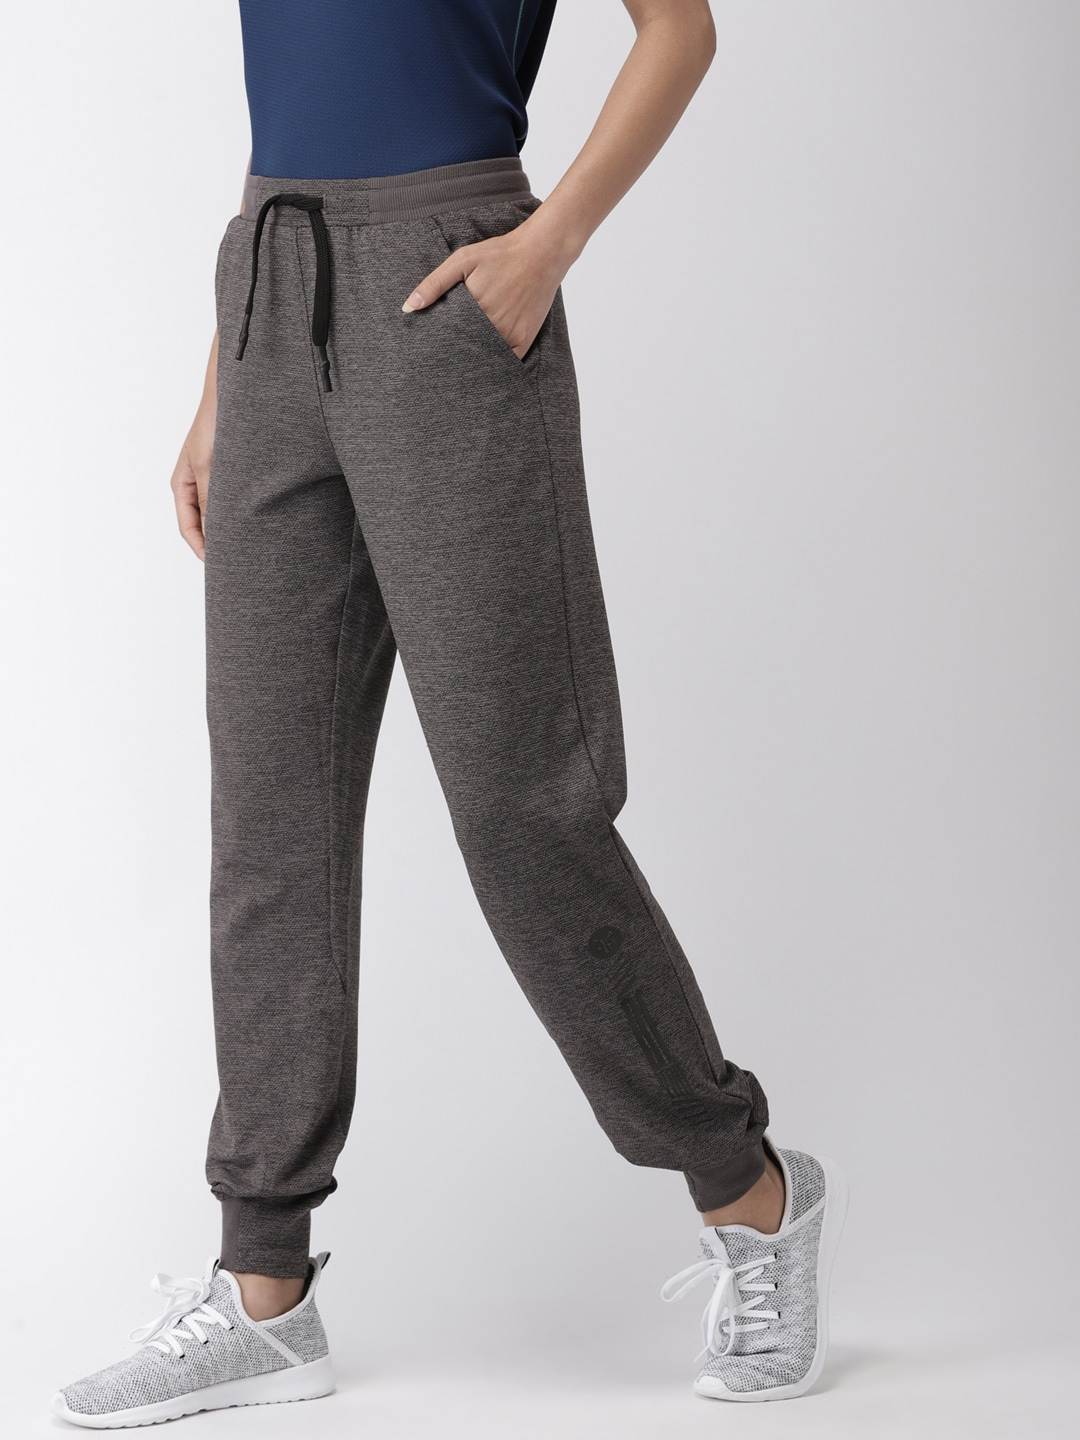 ca8c0945ae95 2go Under Pant Track Pantssuits Track Pants Pants - Buy 2go Under Pant  Track Pantssuits Track Pants Pants online in India